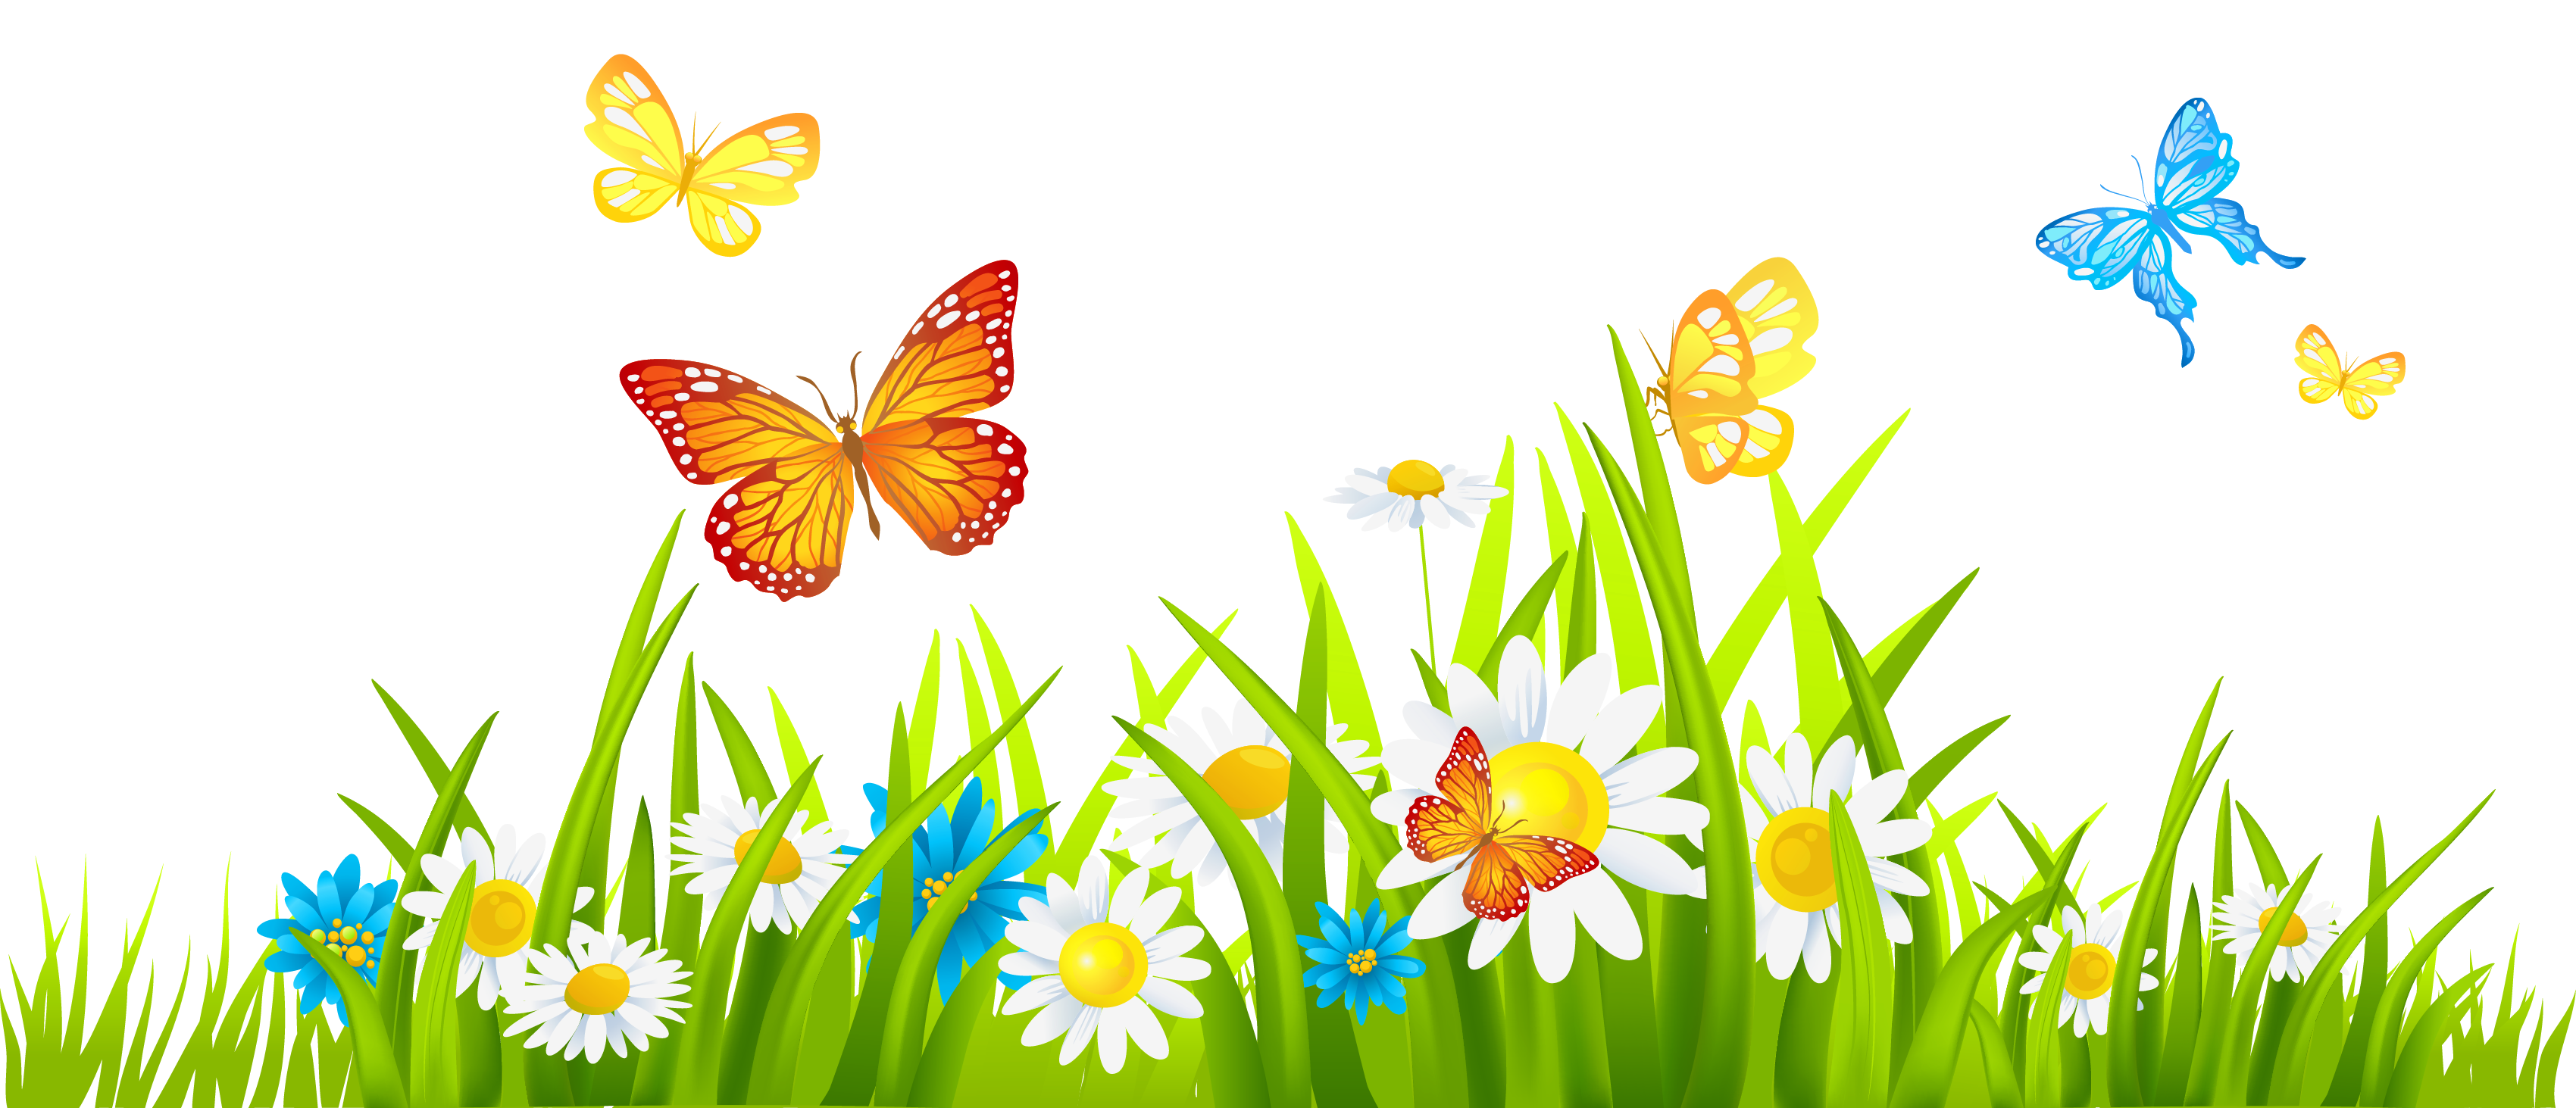 15 garden clipart background png for free download on ya webdesign